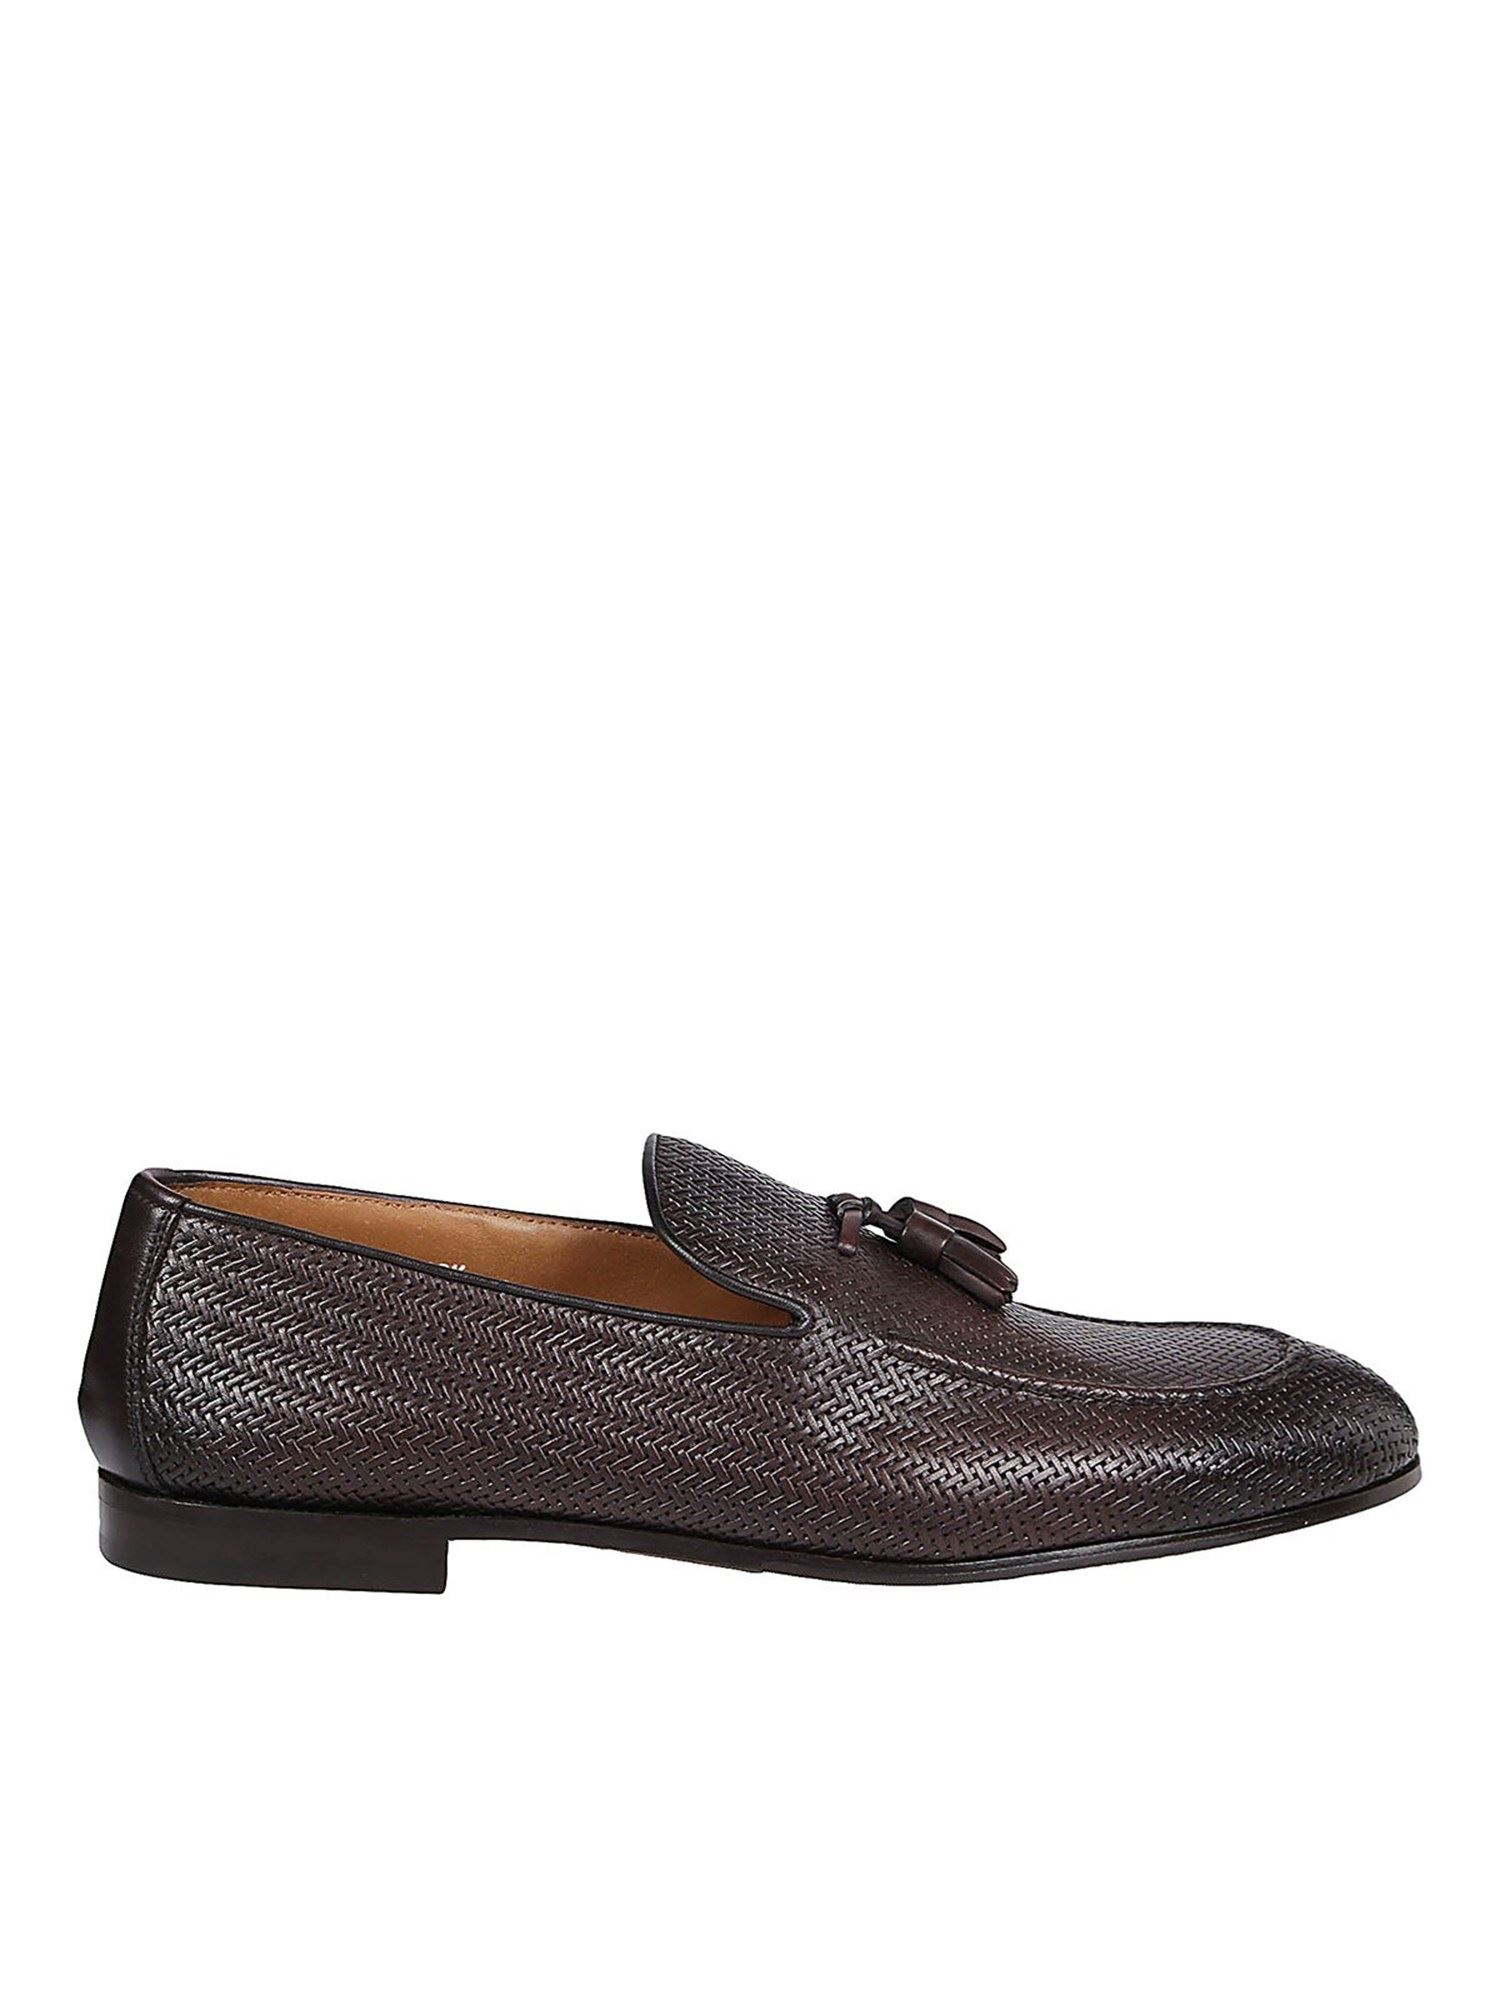 Doucal's WOVEN LEATHER LOAFERS IN BROWN